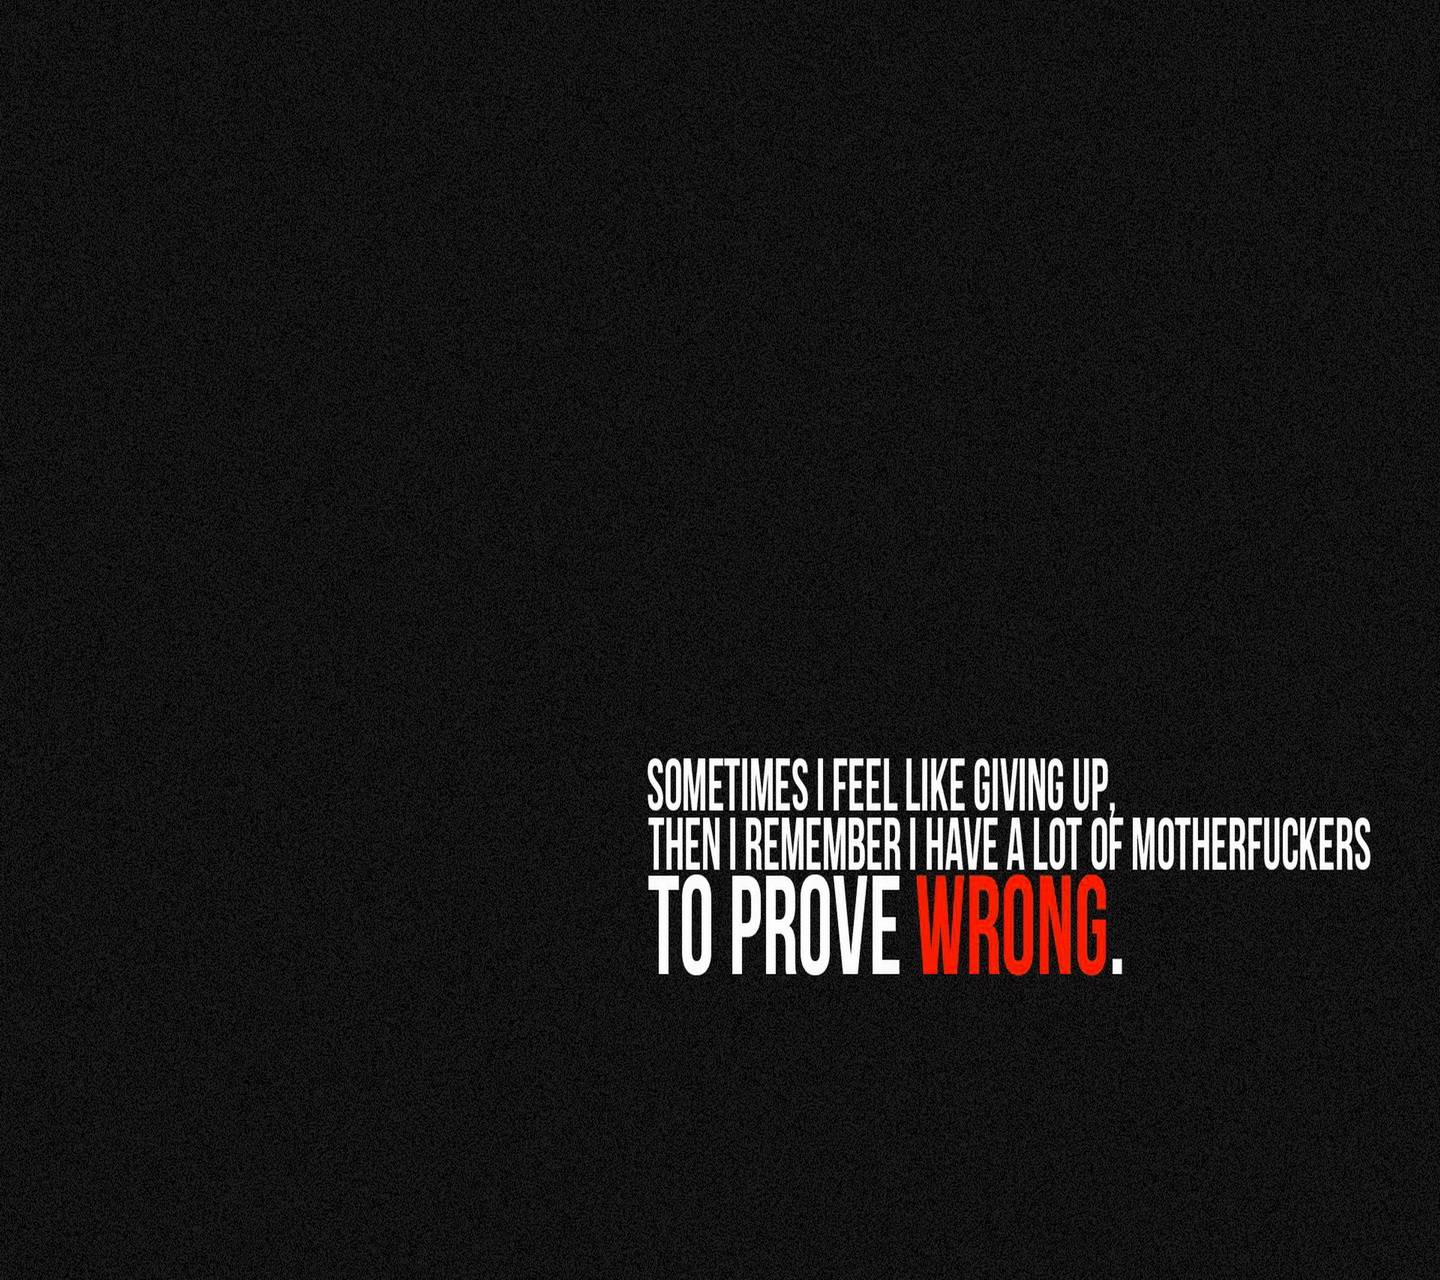 Proove Wrong